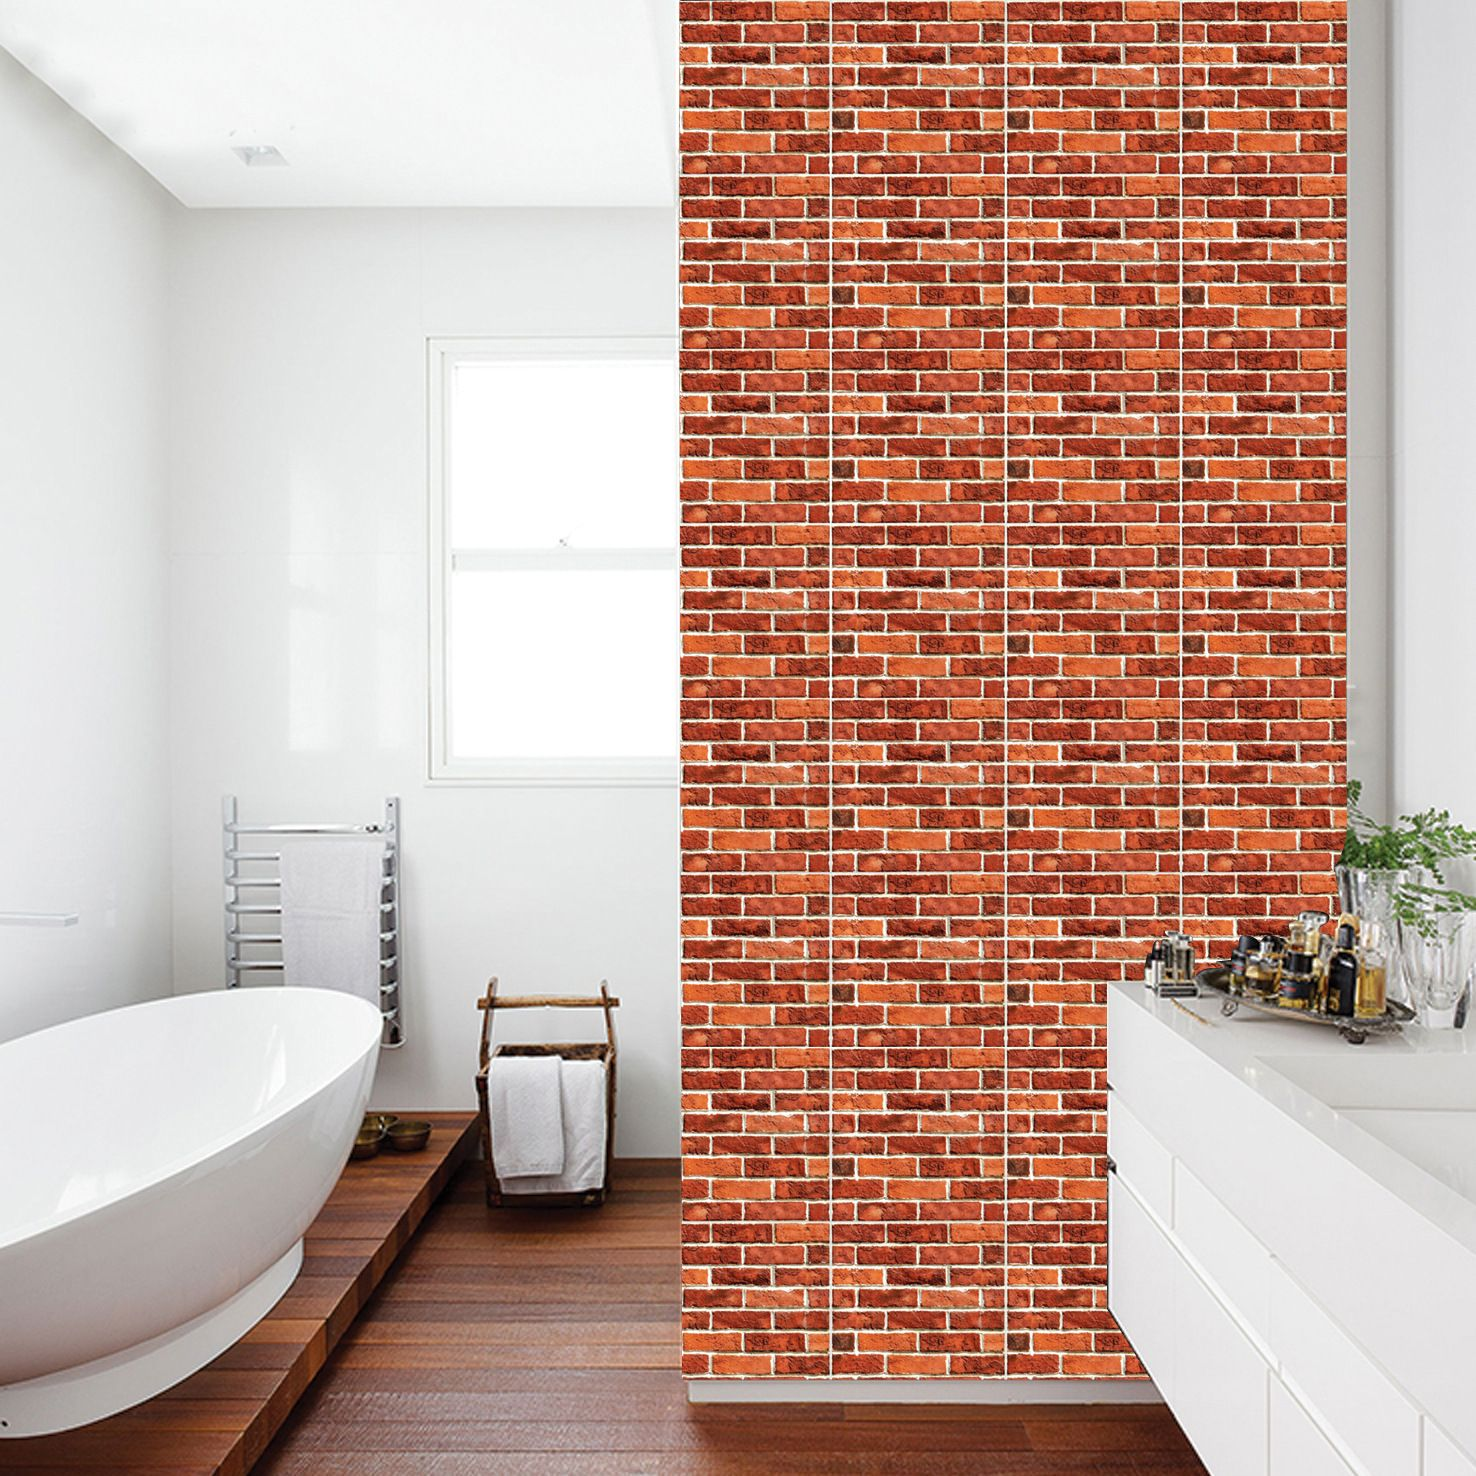 Stone Art 3d Wall Brick Sticker Self Adhesive Removable Wall Du00e9cor For Bathroom Bedroom Living Room Bathroom Wall Panels Wall Stickers Tiles 3d Wall Panels